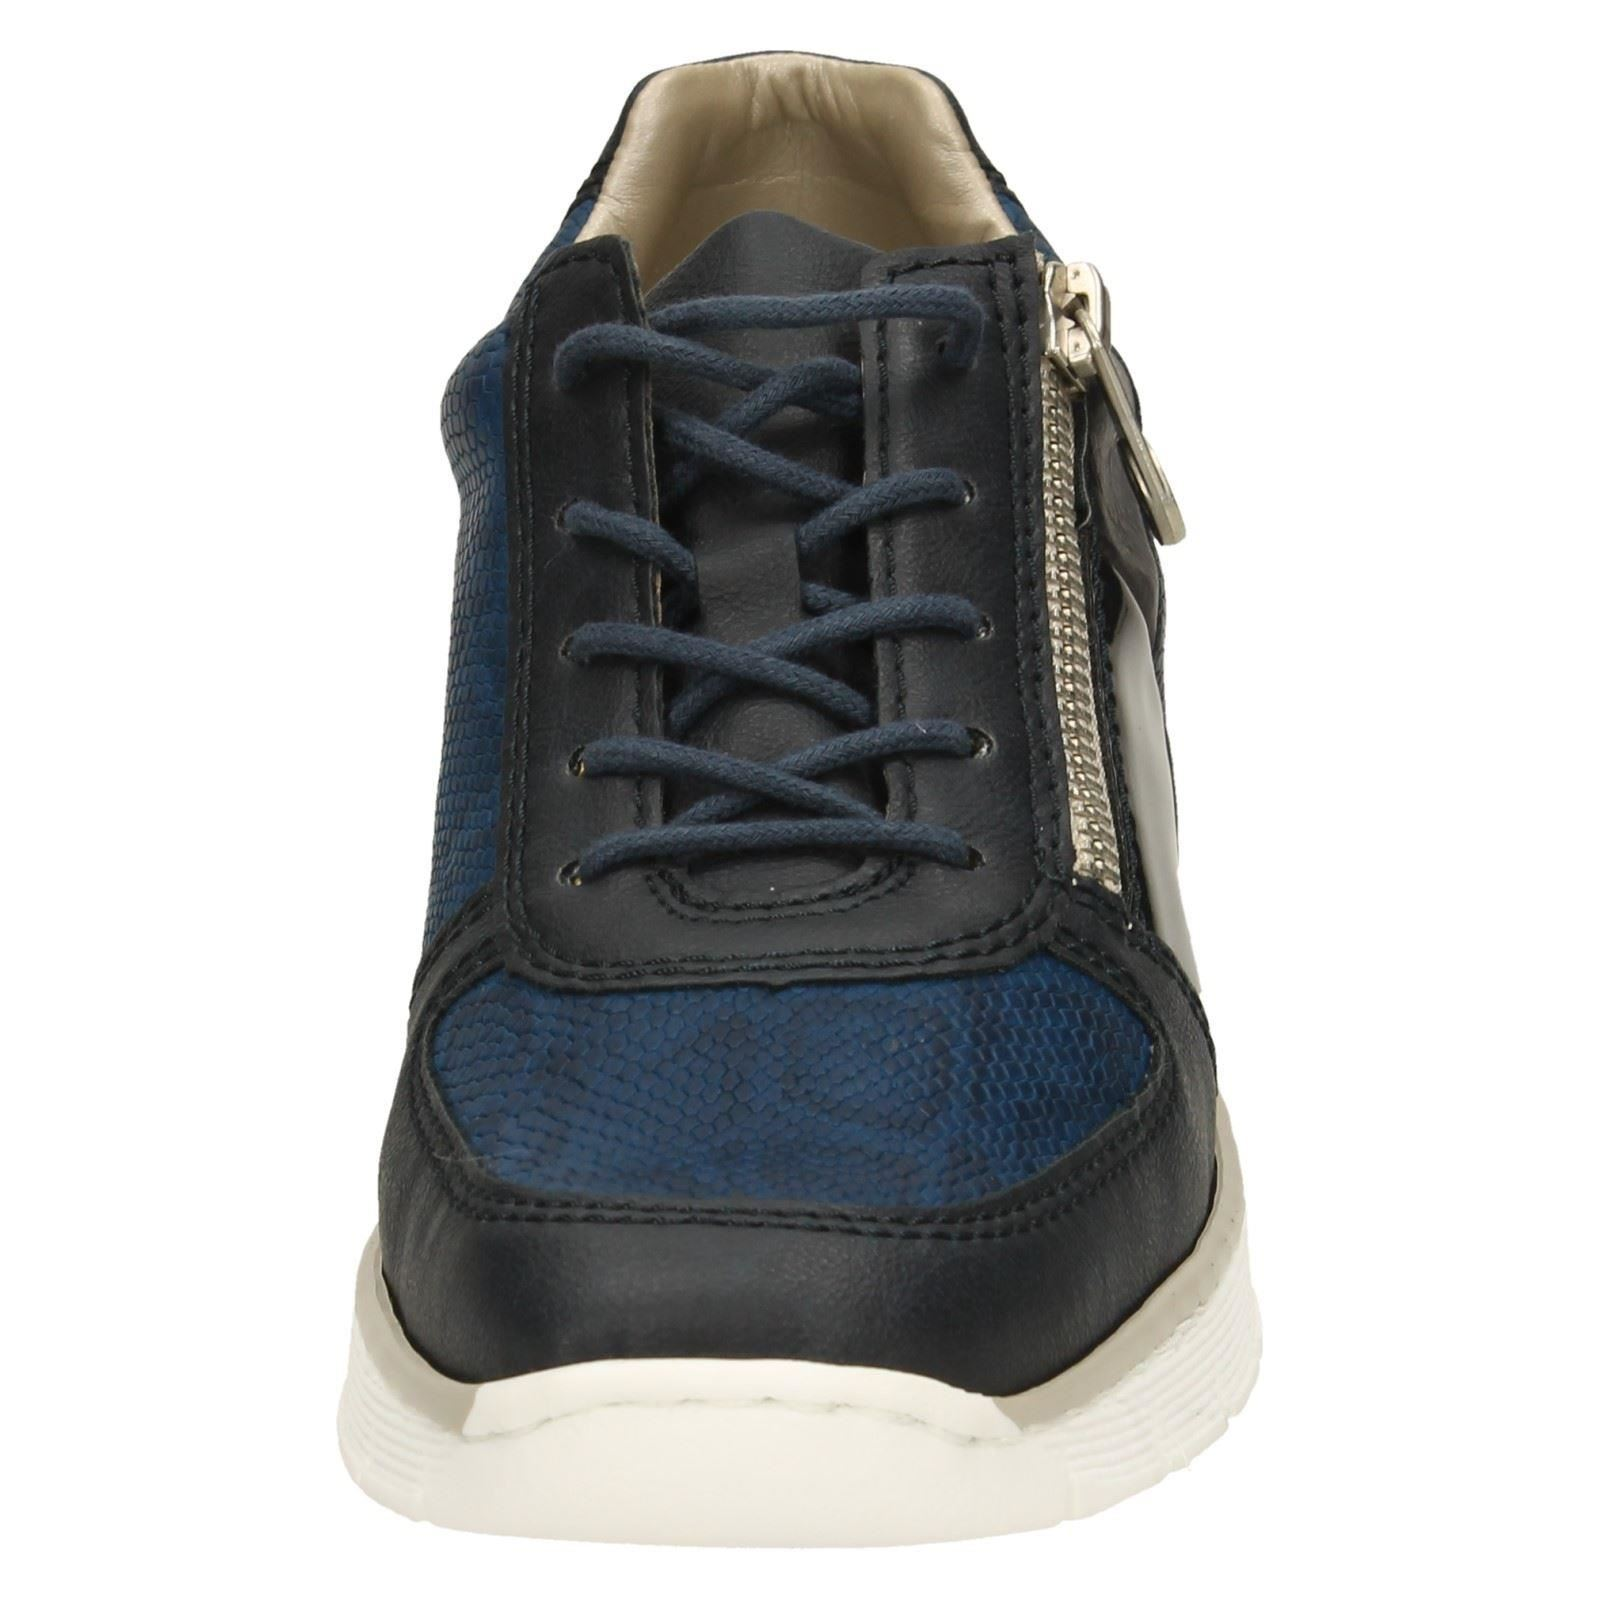 Ladies Rieker Trainers Style The Style Trainers - 53714 0ecdd7